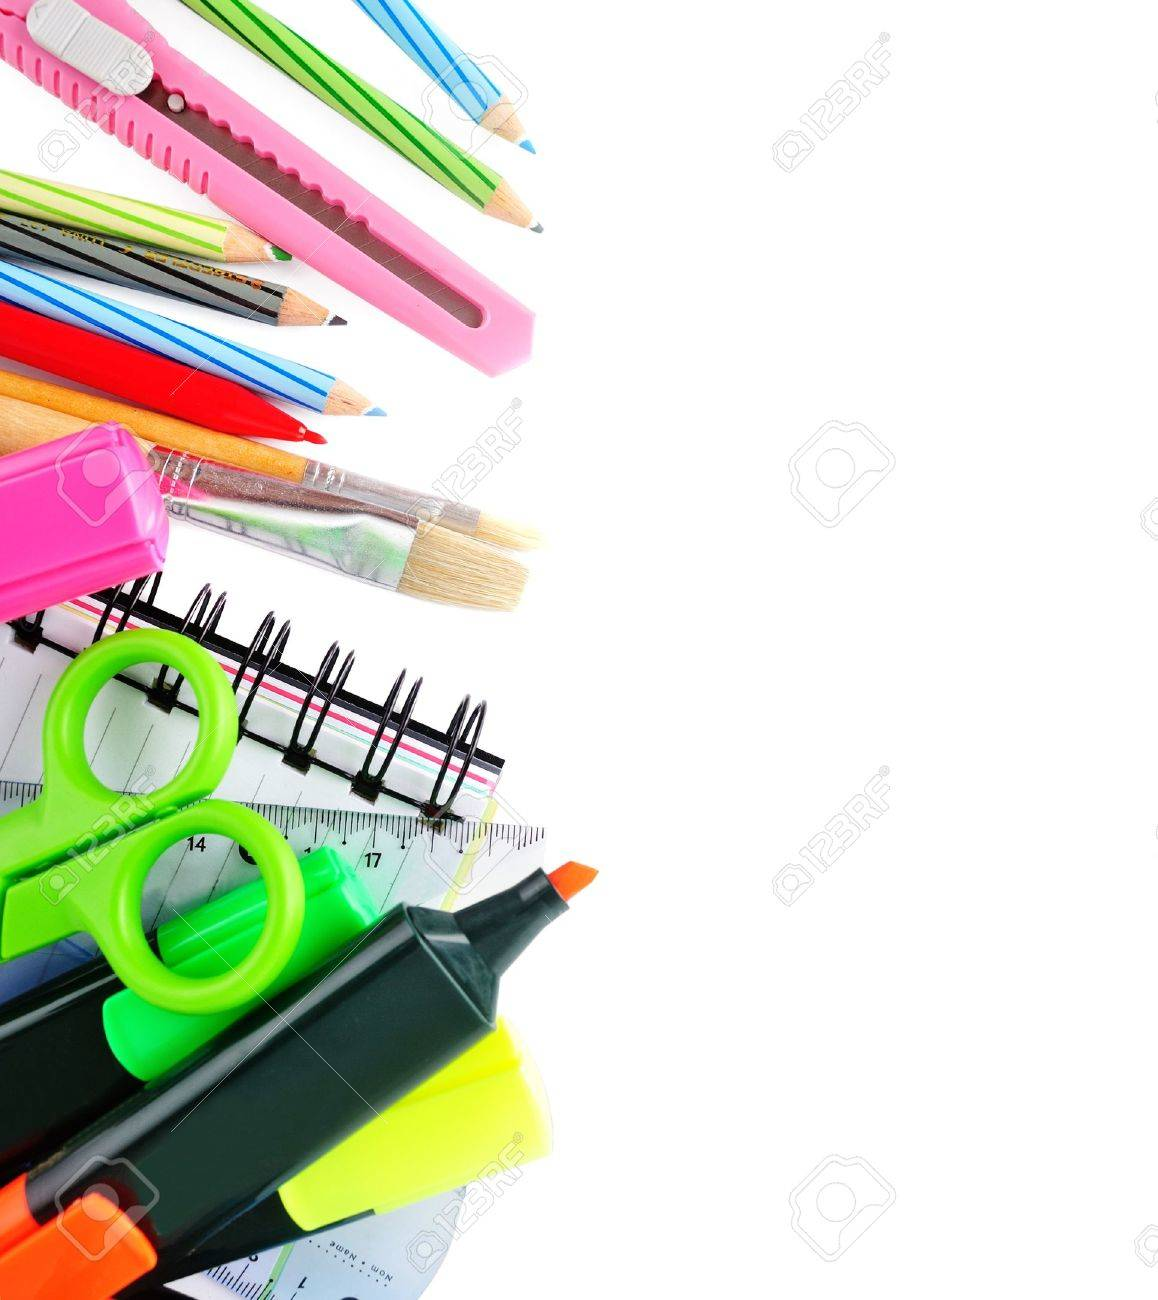 School stationery isolated over white for layout design and copy space stock photo 19221905